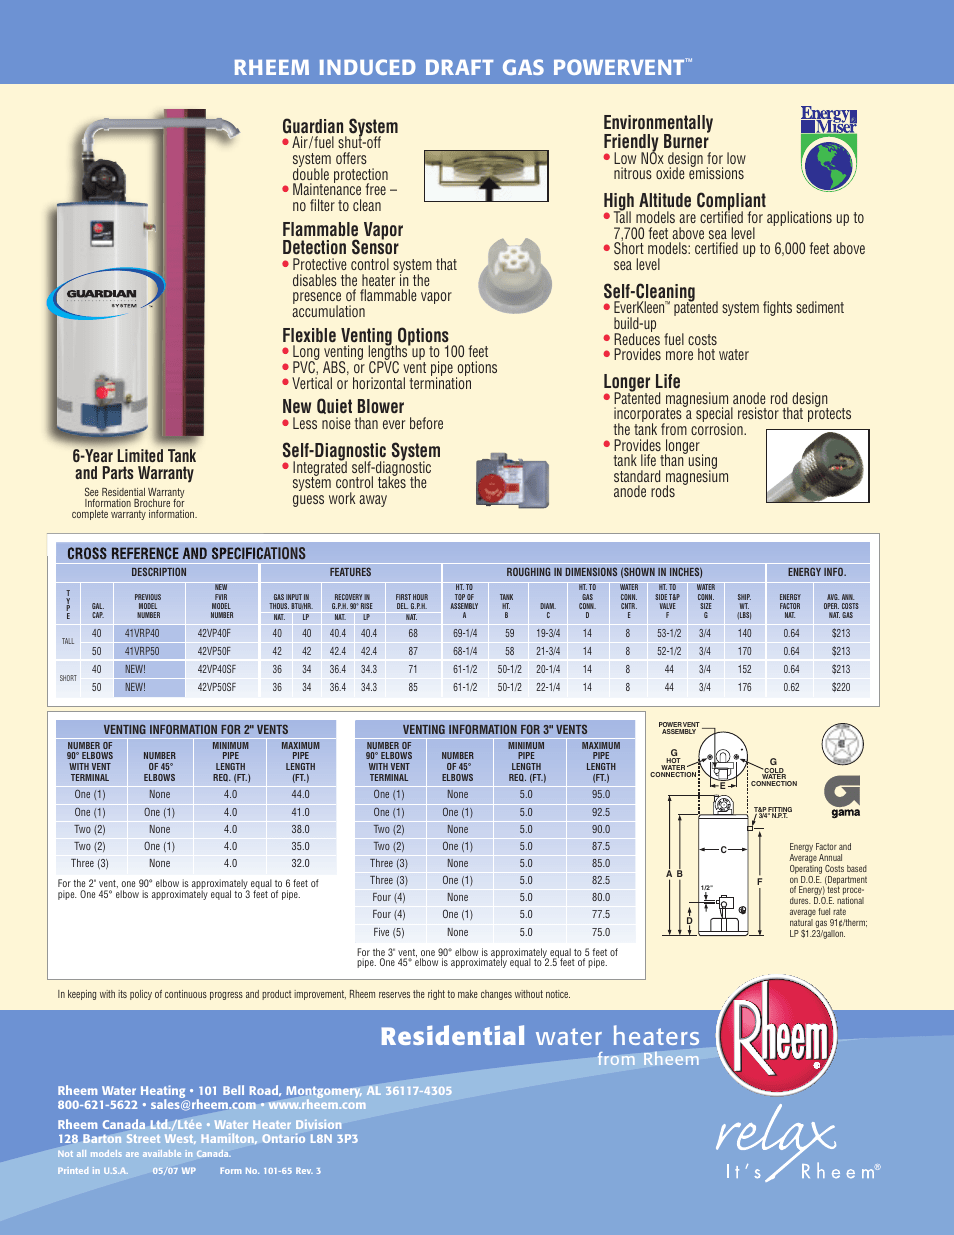 Rheem Power Vent Residential Water Heaters Rheem Induced Draft Gas Powervent